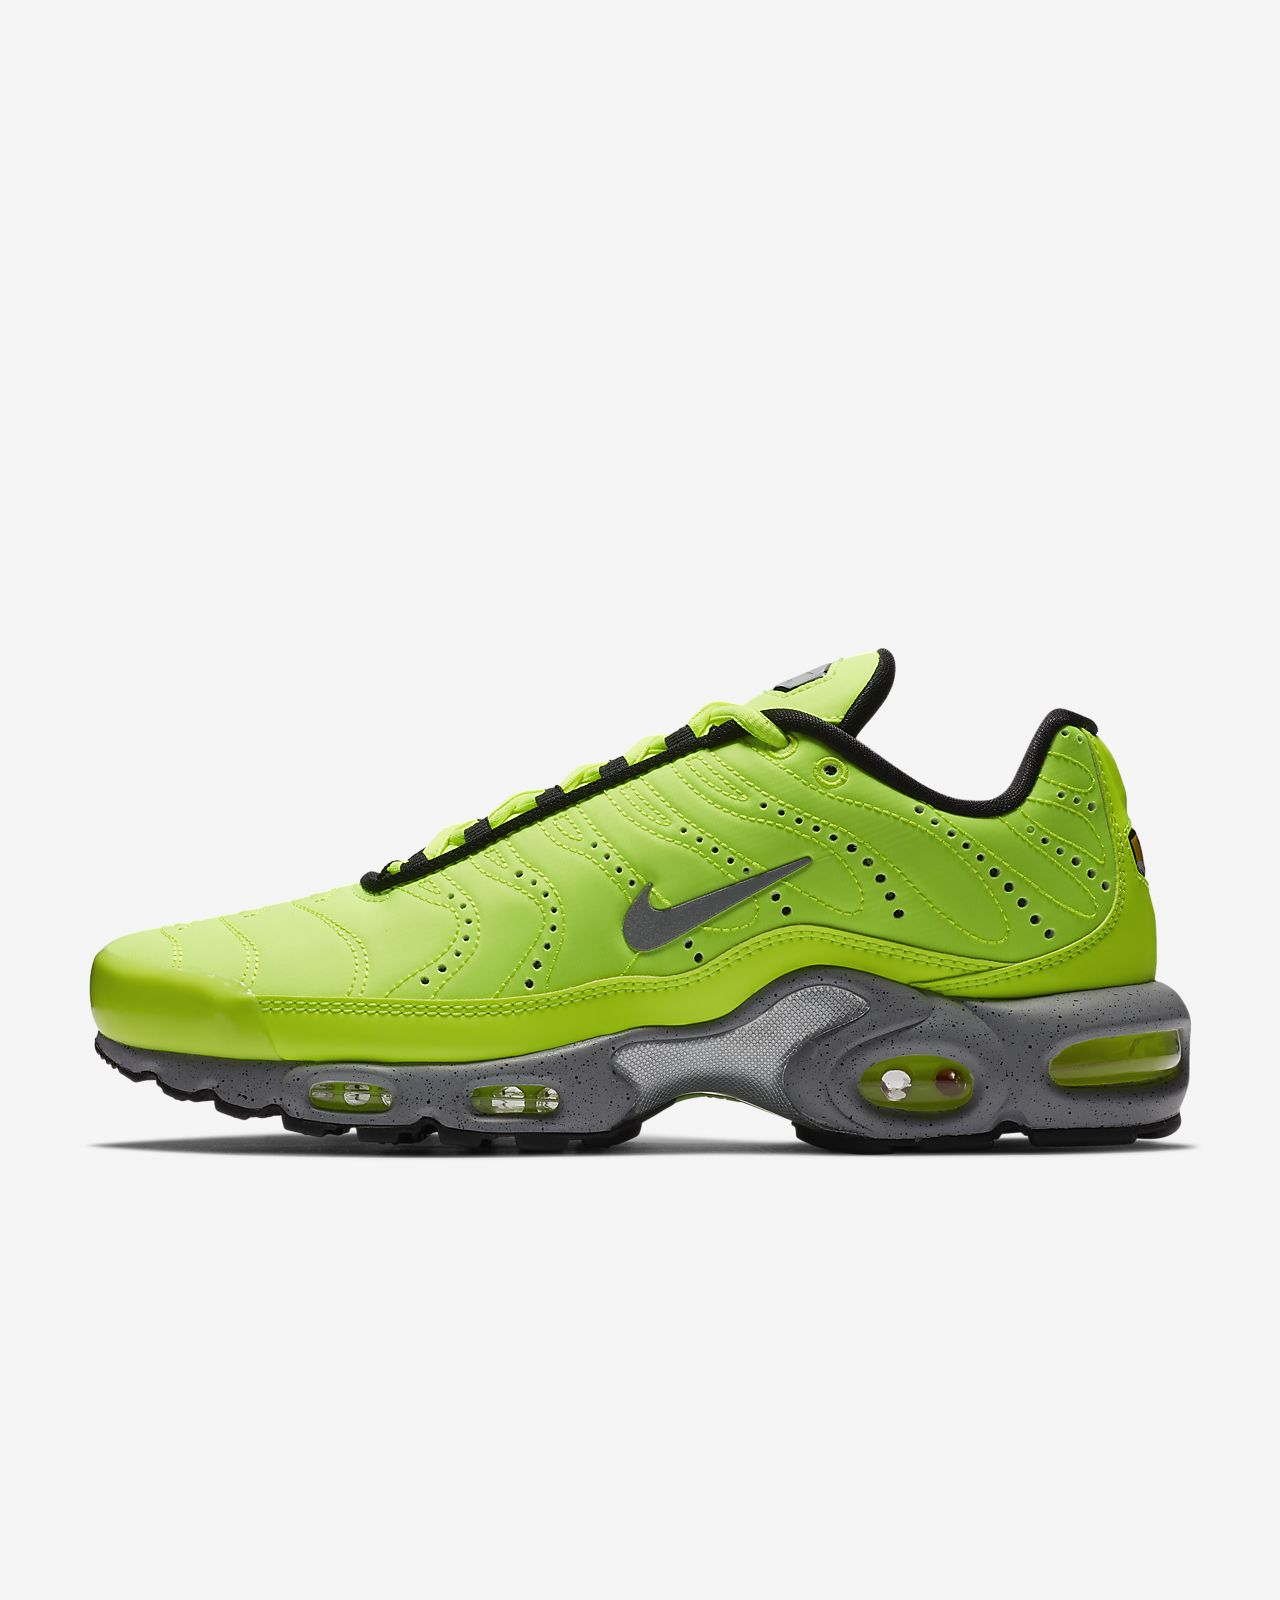 24984c07be7 Nike Air Max Plus Premium Men s Shoe. Nike.com FI